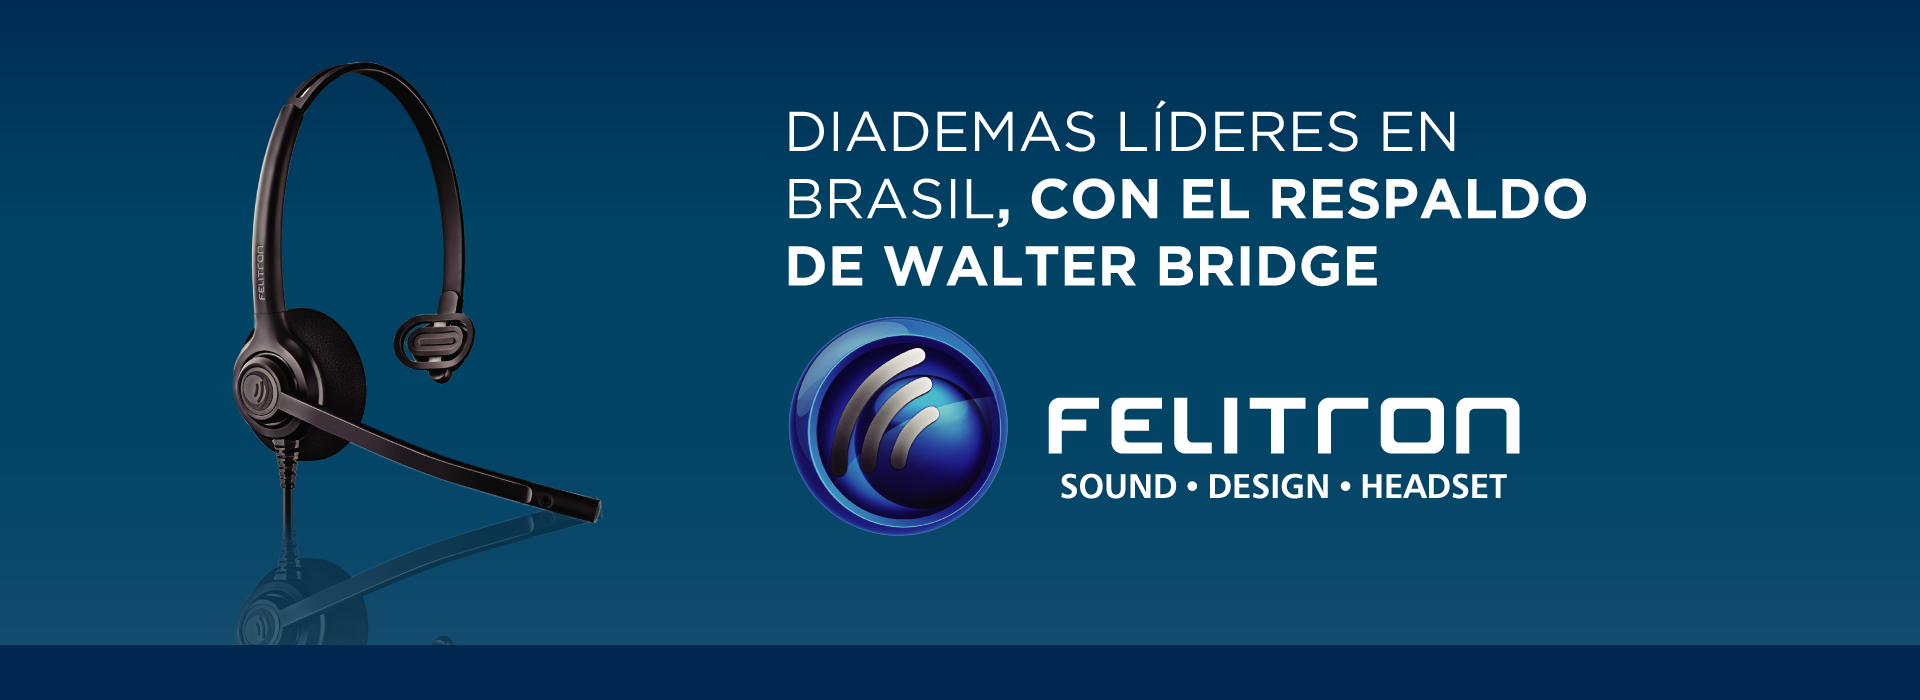 Diademas Call Center Felitron